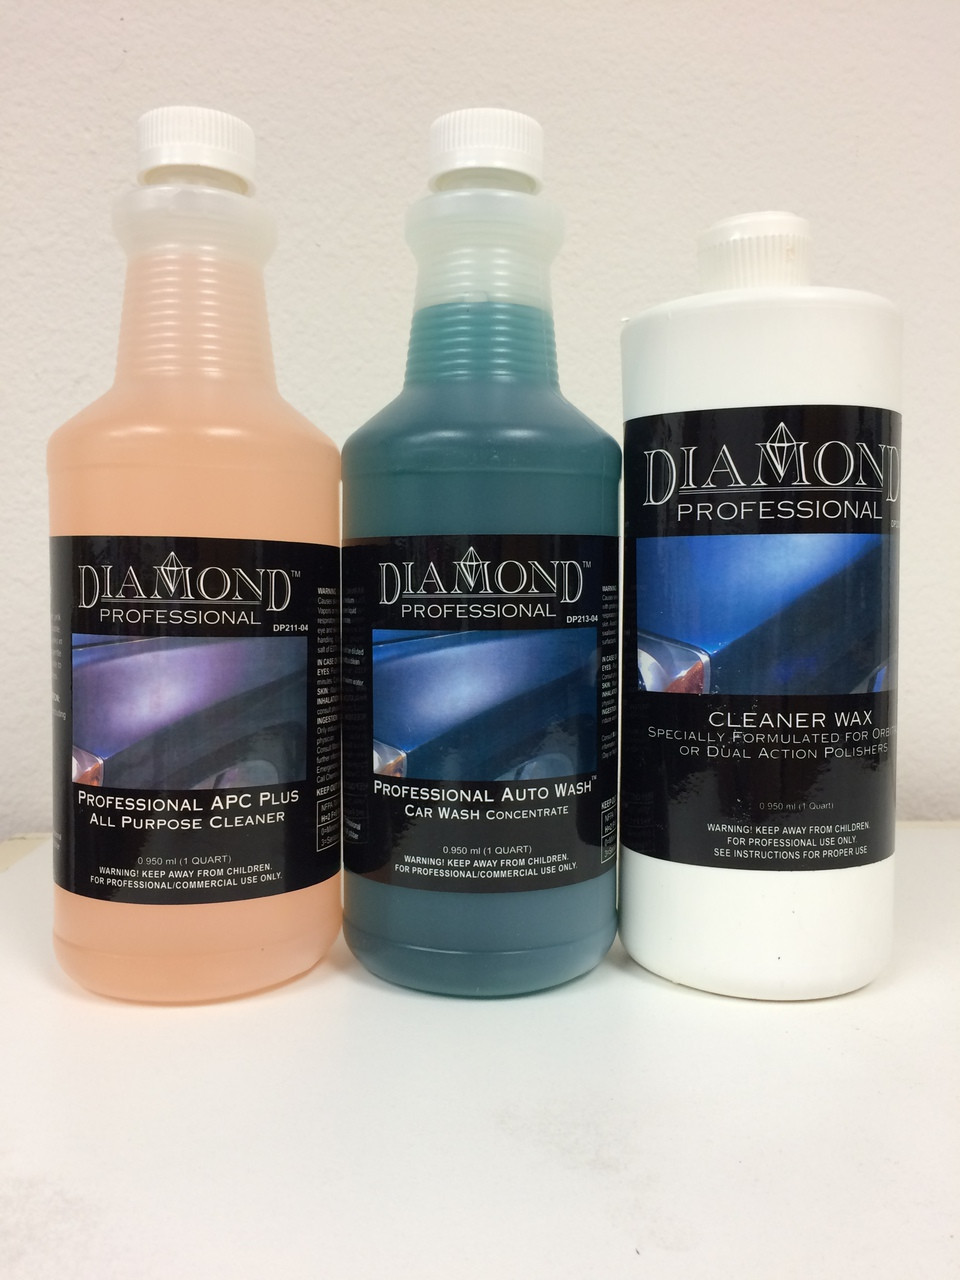 Taking care of your car is made easy with these 3 easy steps--cleaning, washing and protecting.  Your can prolong the beauty of your car's interior and exterior at a discounted price with just 3 products.  We've included some of our best Diamond Professional products in our 1-2-3 All Purpose Car Care Kit (quart sizes):  Professional APC Plus which can be used on paint, metal surfaces, upholstery, carpets and interior vinyl/leather panels (Please note dilution recommendations for consistent results.) Professional Auto Wash concentrate provides an effective lifting action that easily rinses away dirt and road film. Cleaner Wax removes light scratches, swirl marks and imperfections and produces a brilliant, lasting shine